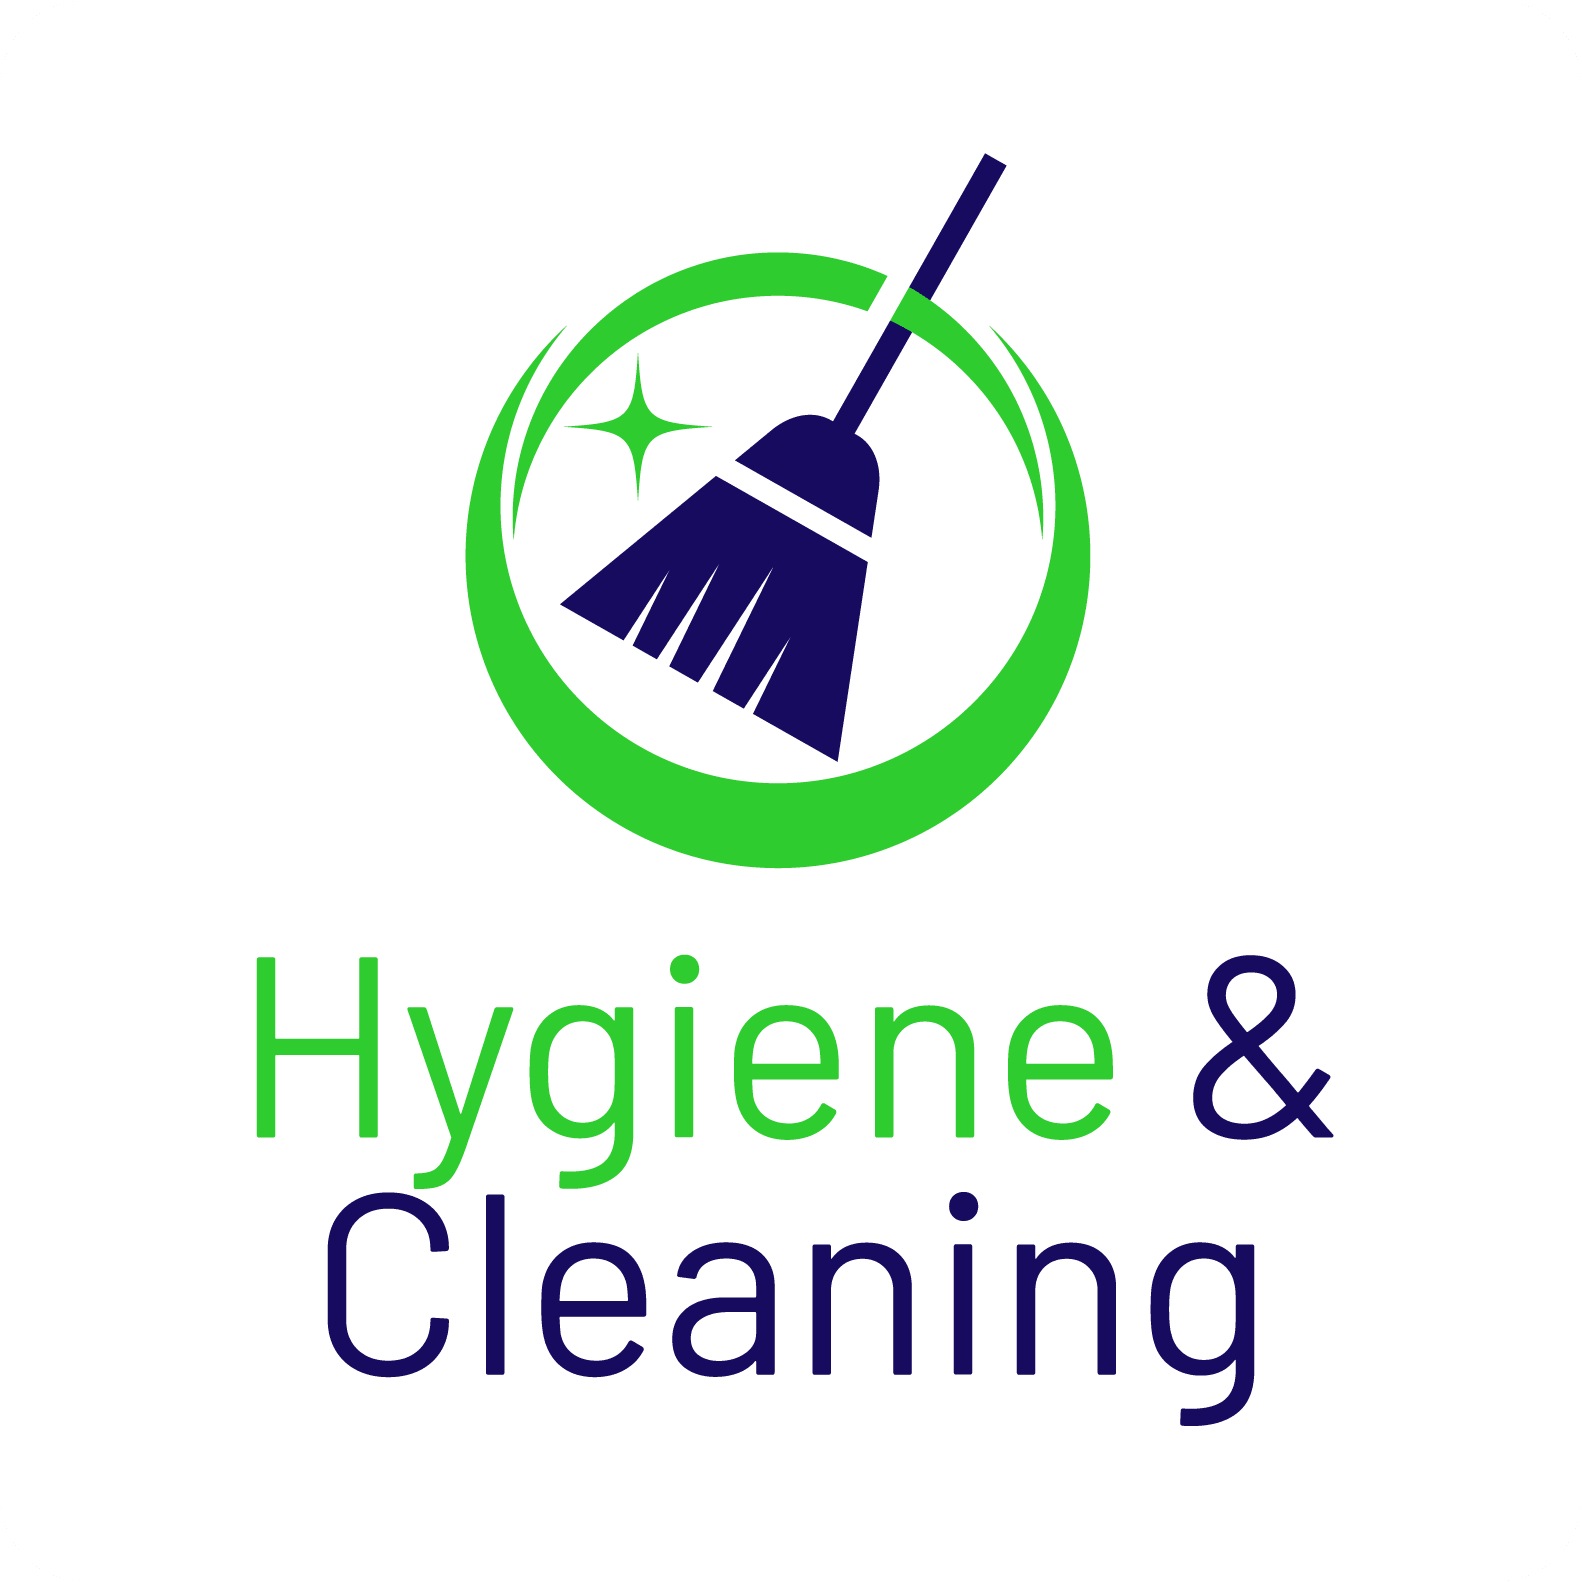 Image for hygiene & cleaning category